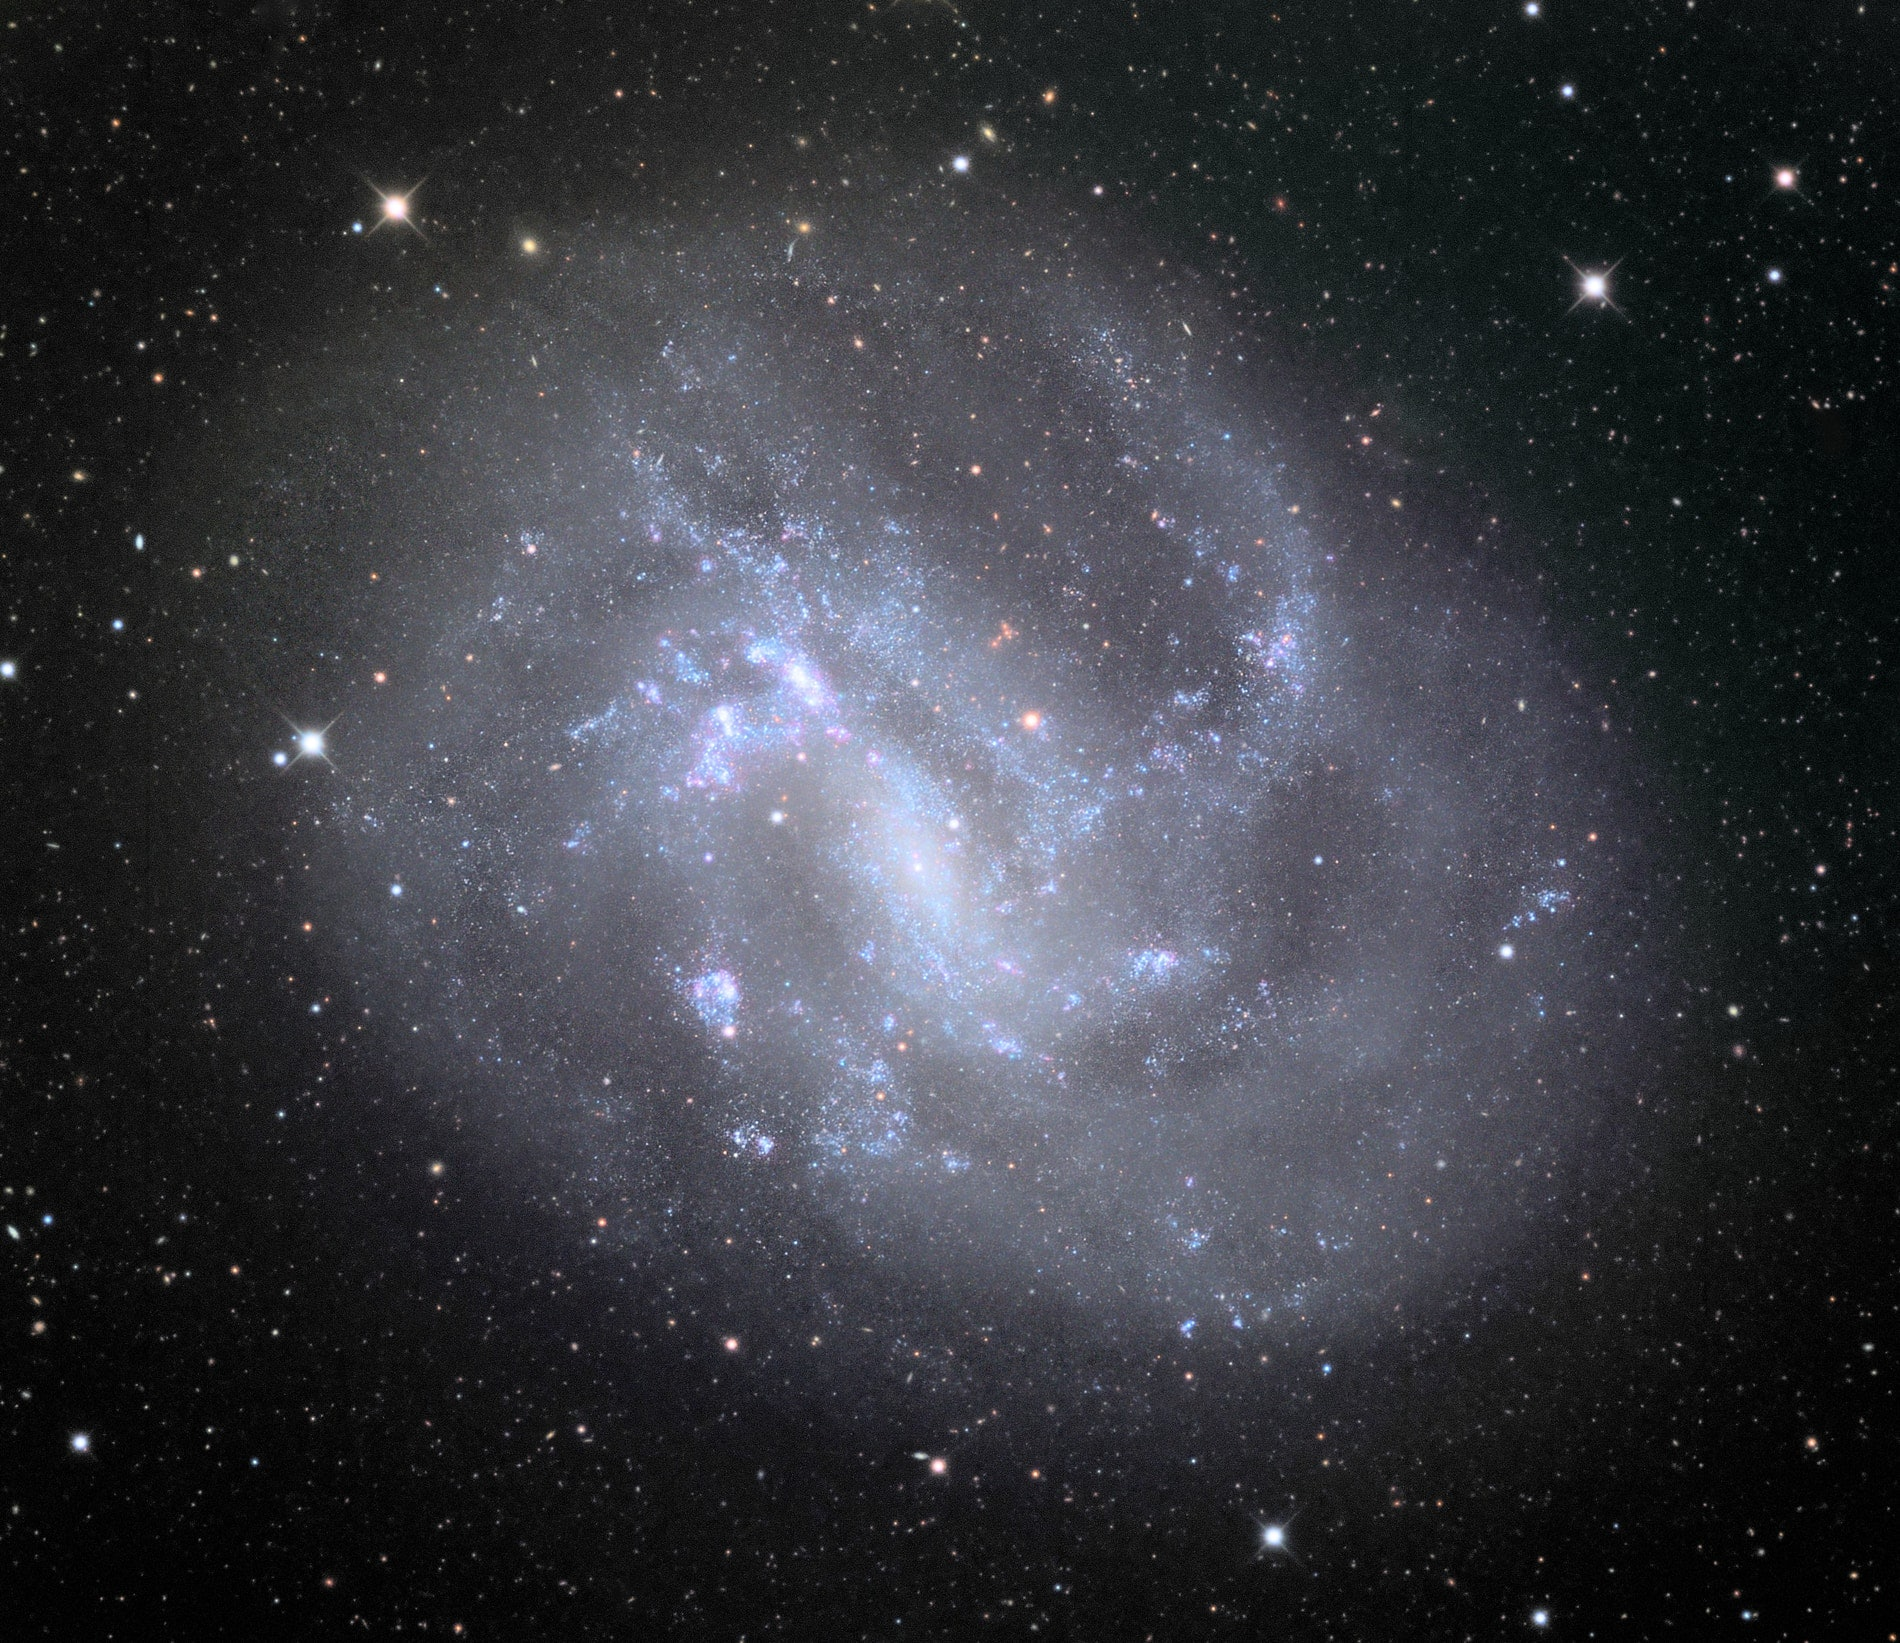 NGC 4395 is imaged with the Schulman Telescope at Mount Lemmon Observatory